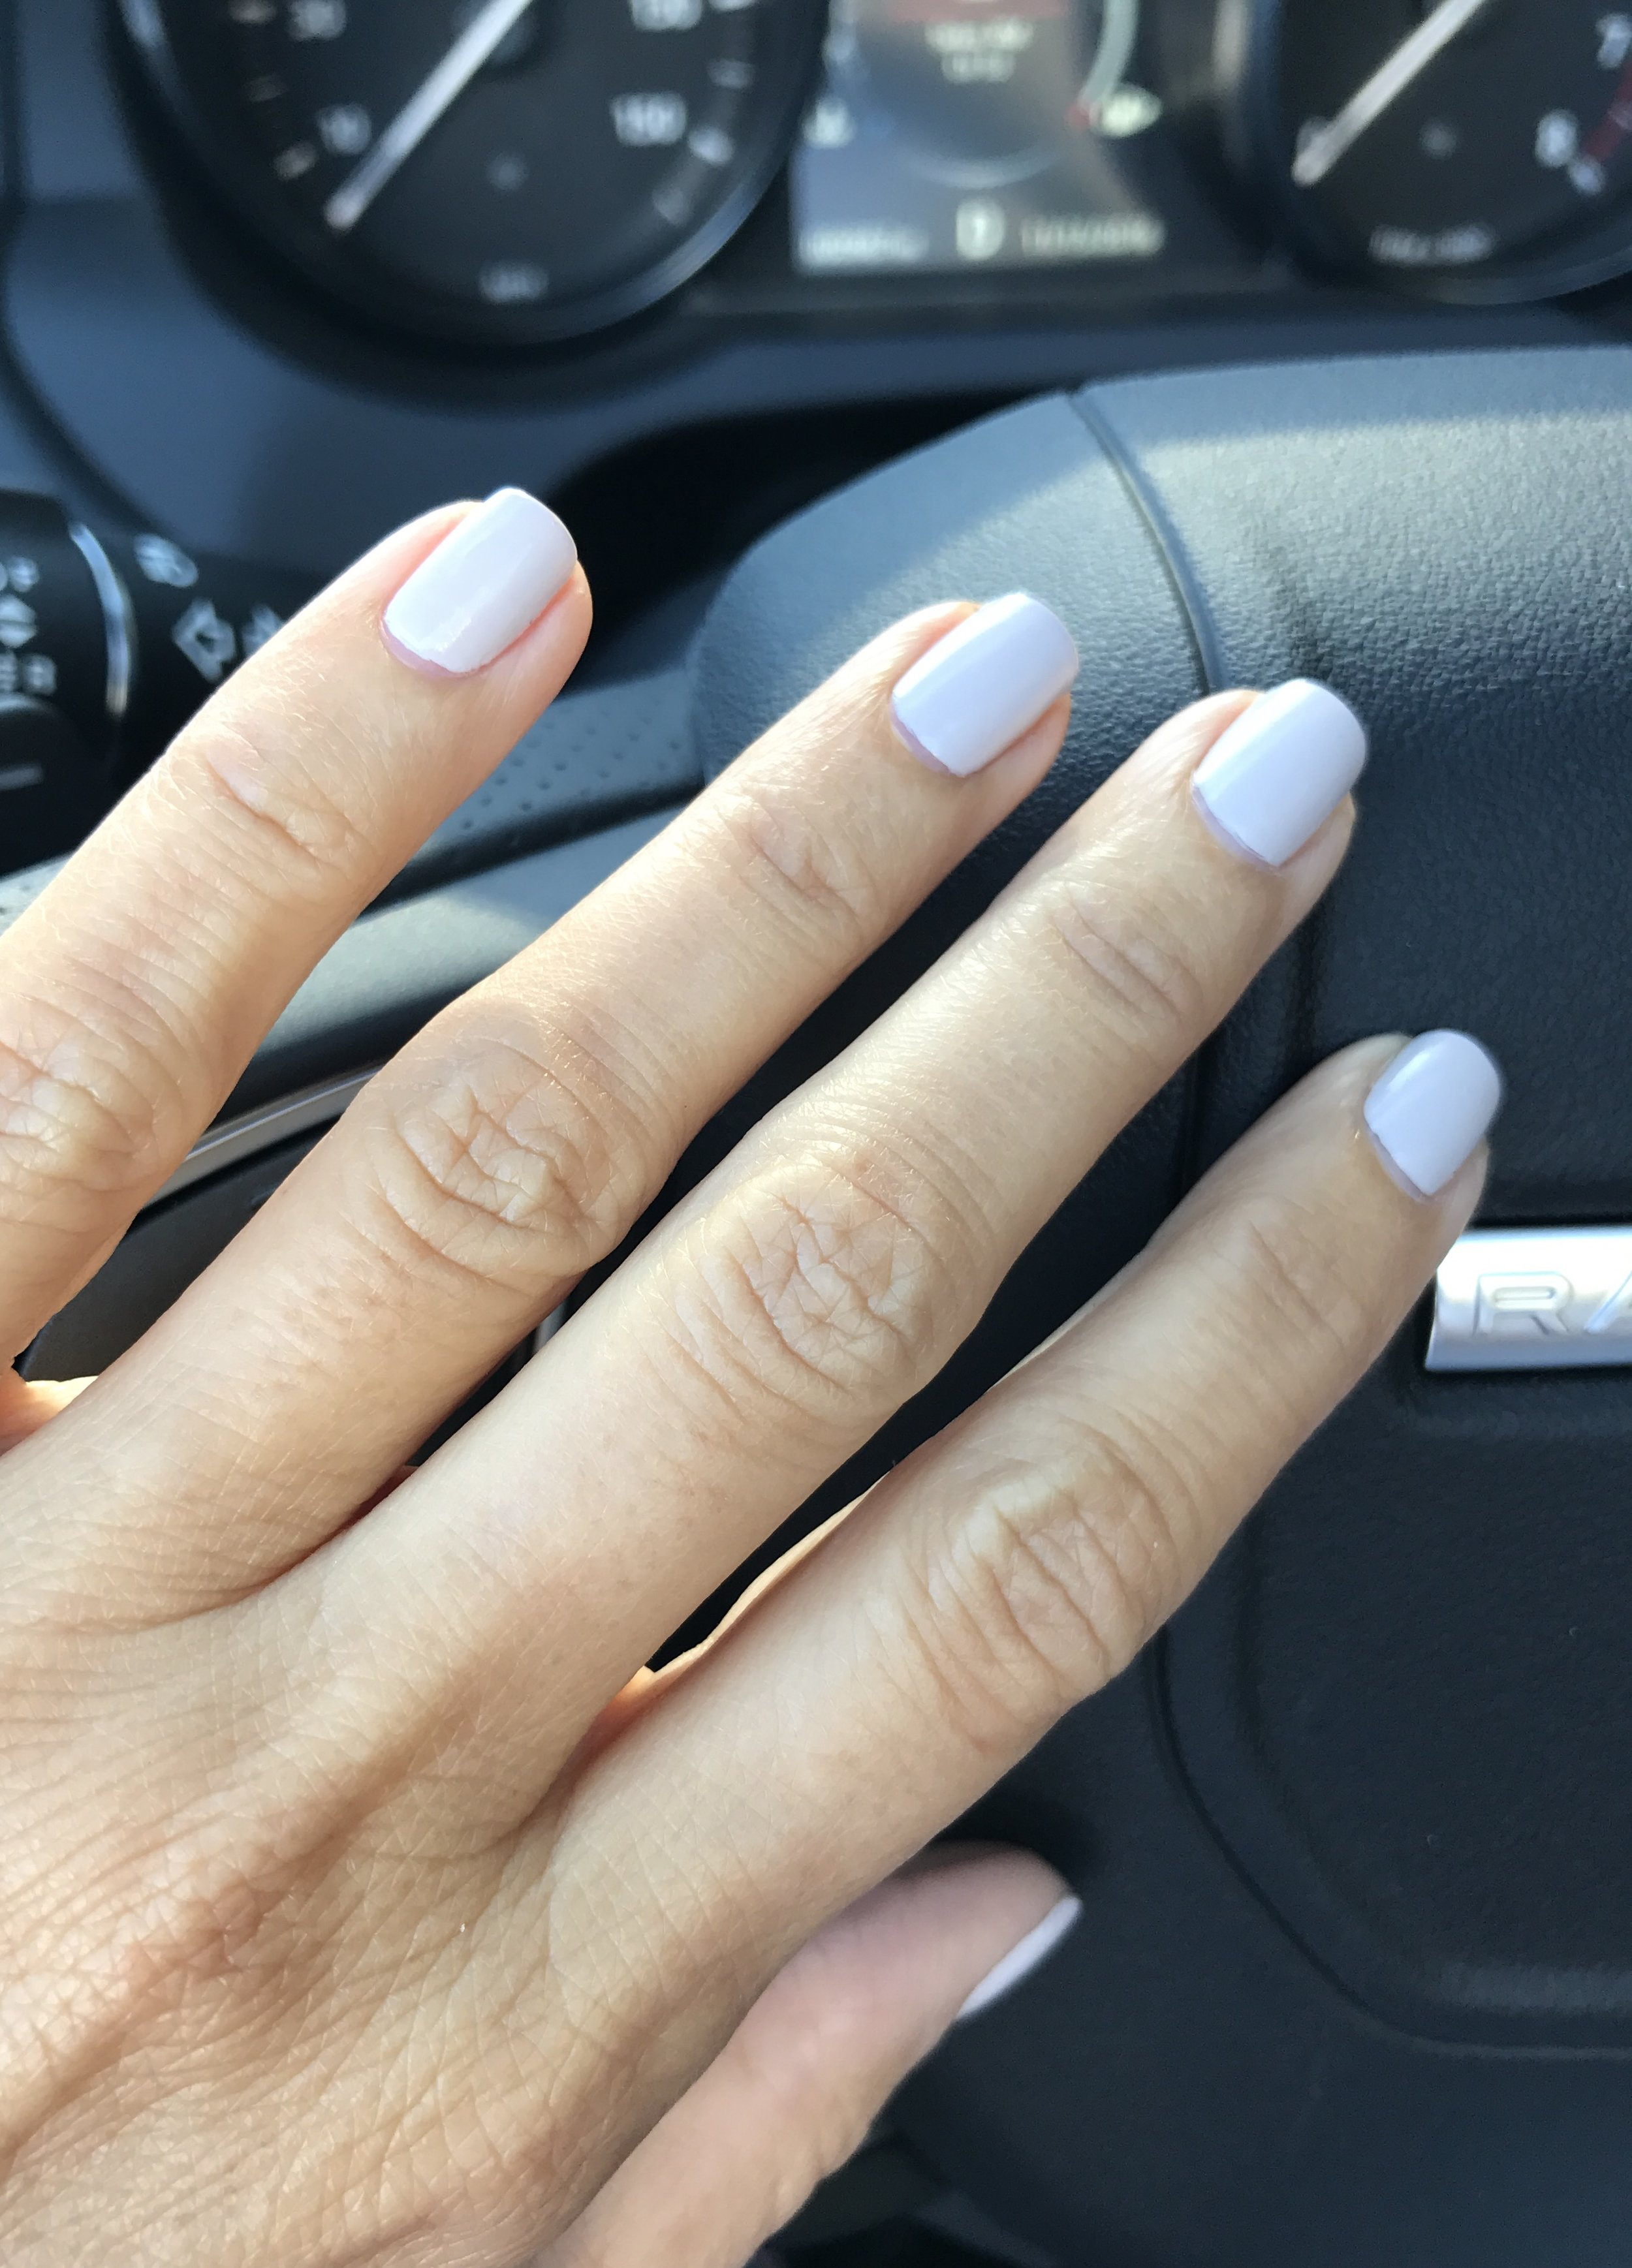 Nail color by LVX in cashmere.